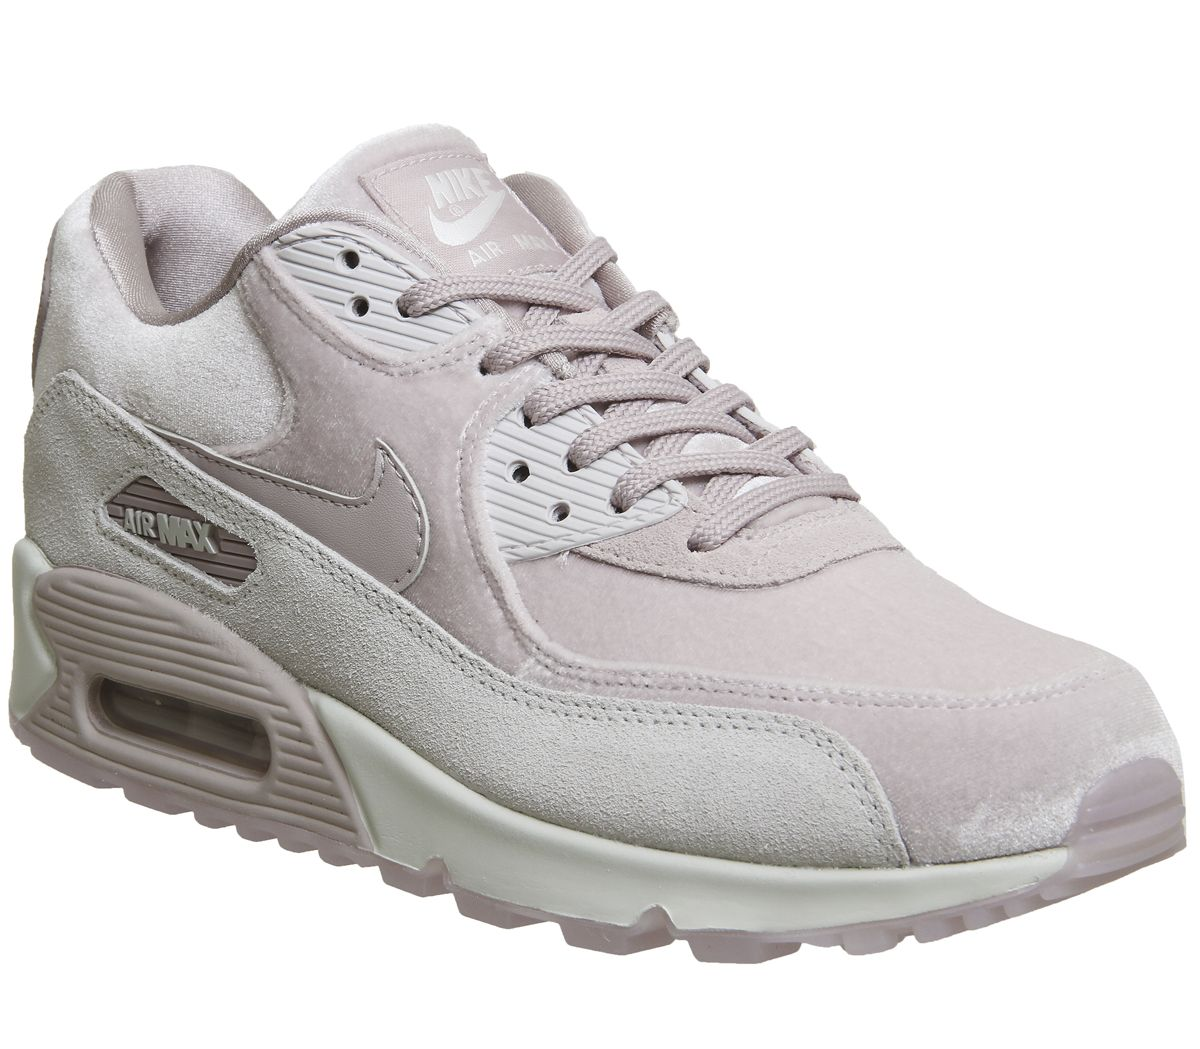 Conception innovante f8320 b81db Air Max 90